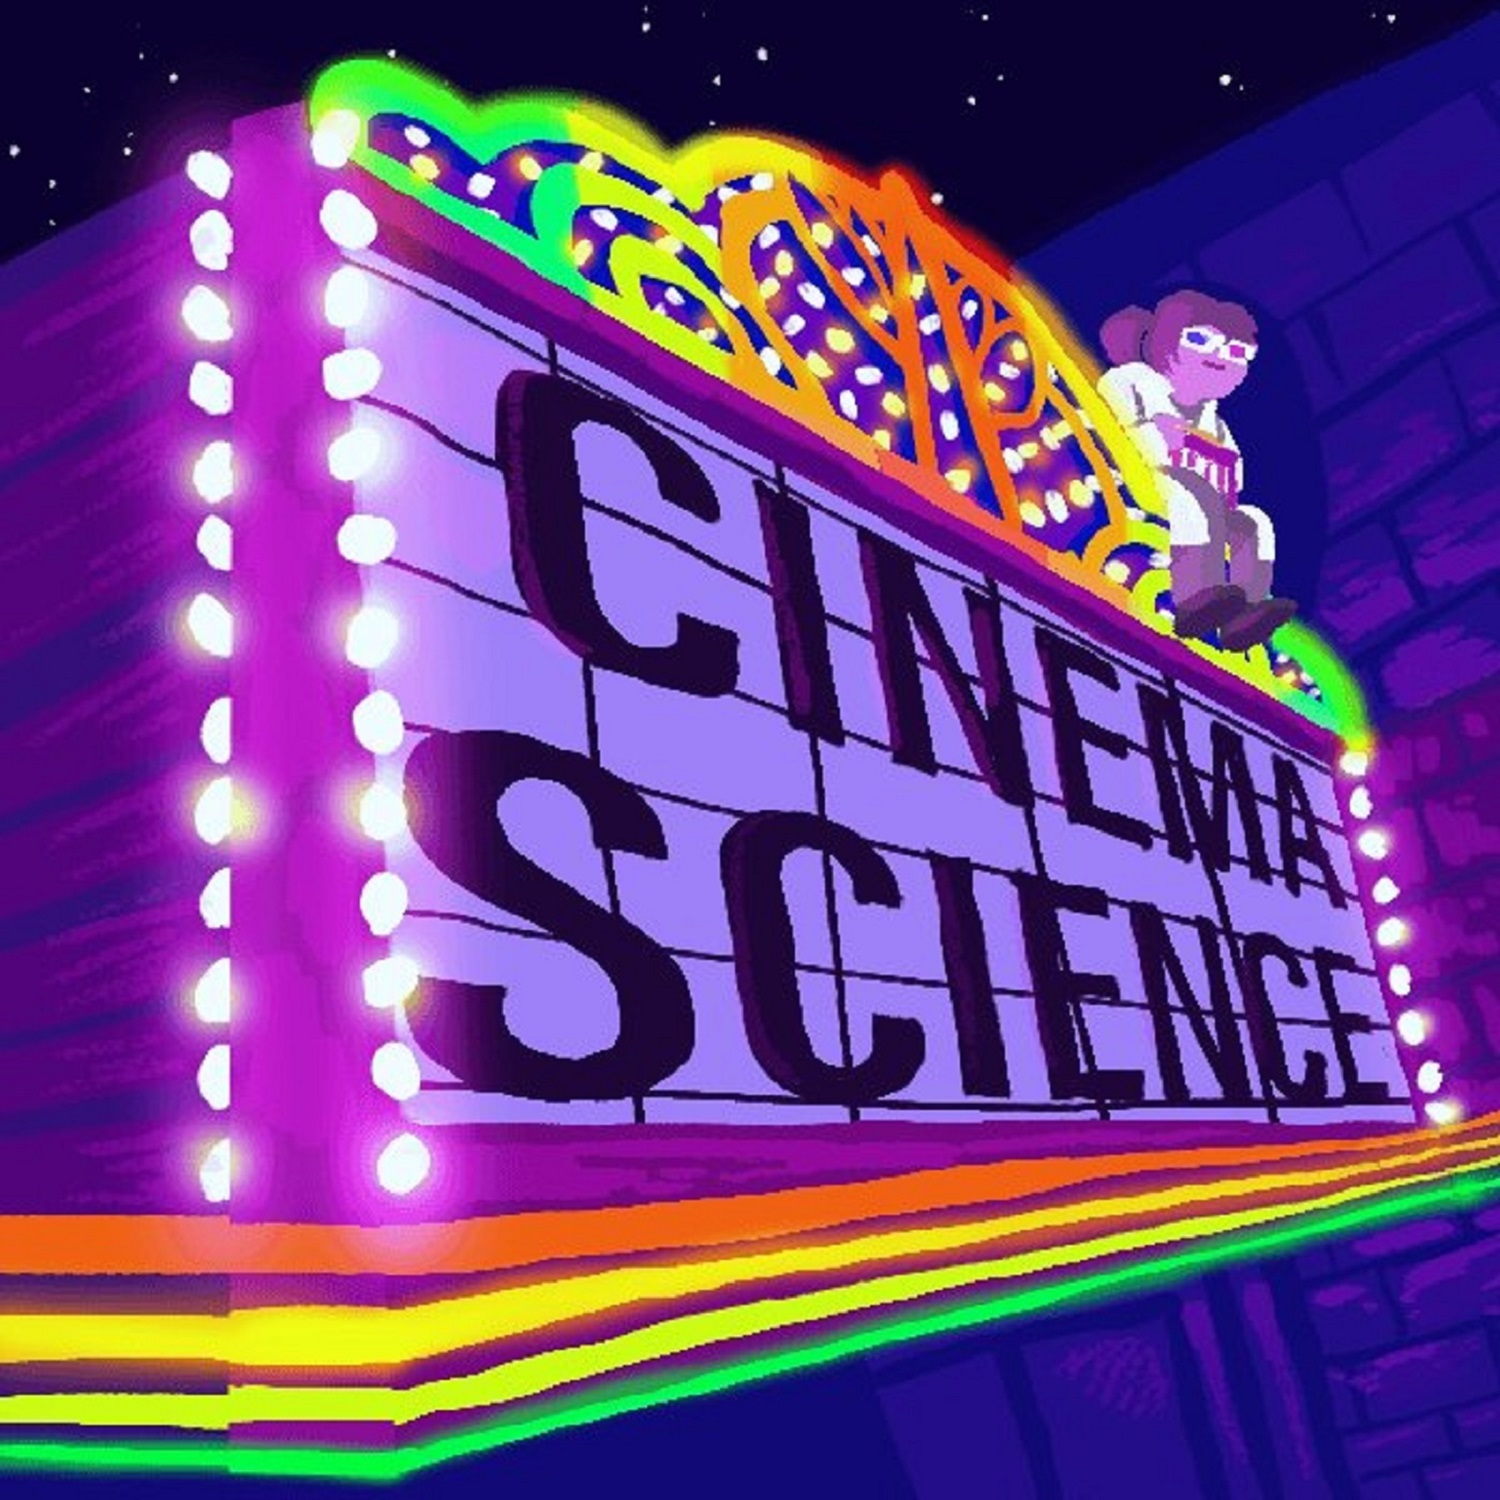 Cinema Science Podcast: Scientists Chat About Their Favorite Movies and Shows